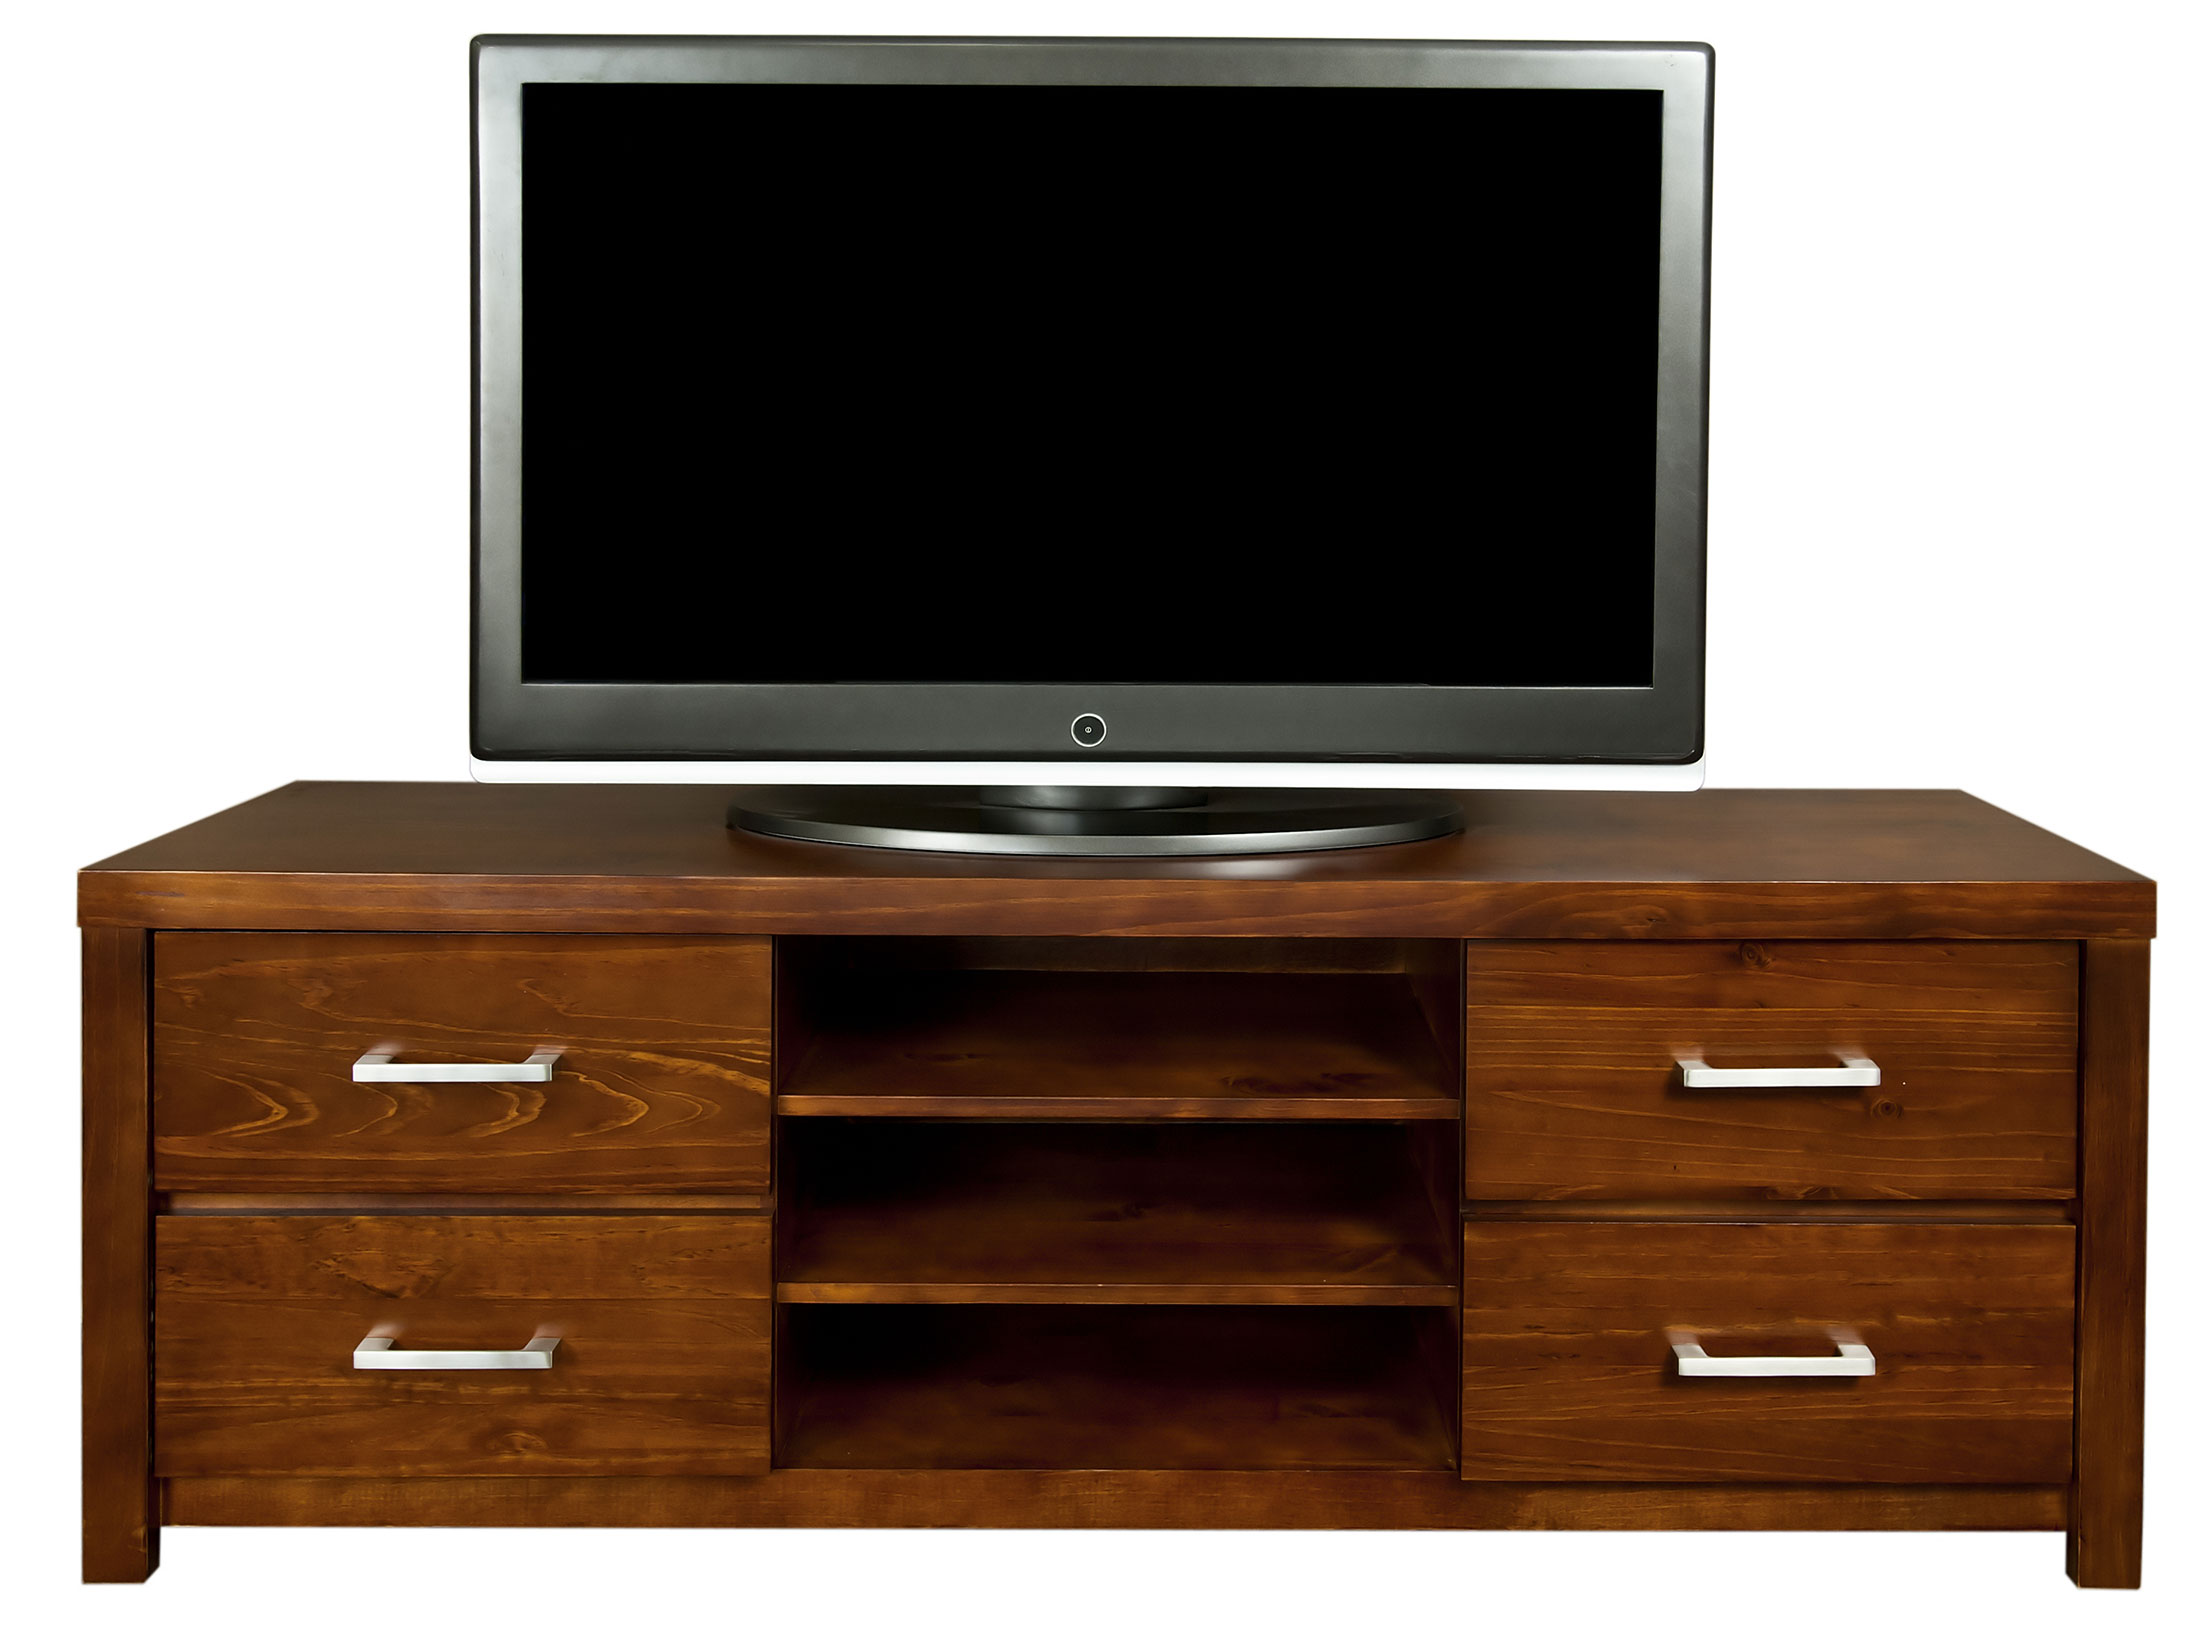 Tv Cabinet Kitchen Maple Leaf Kitchen Cabinets Ltd Desks And Tv Stands